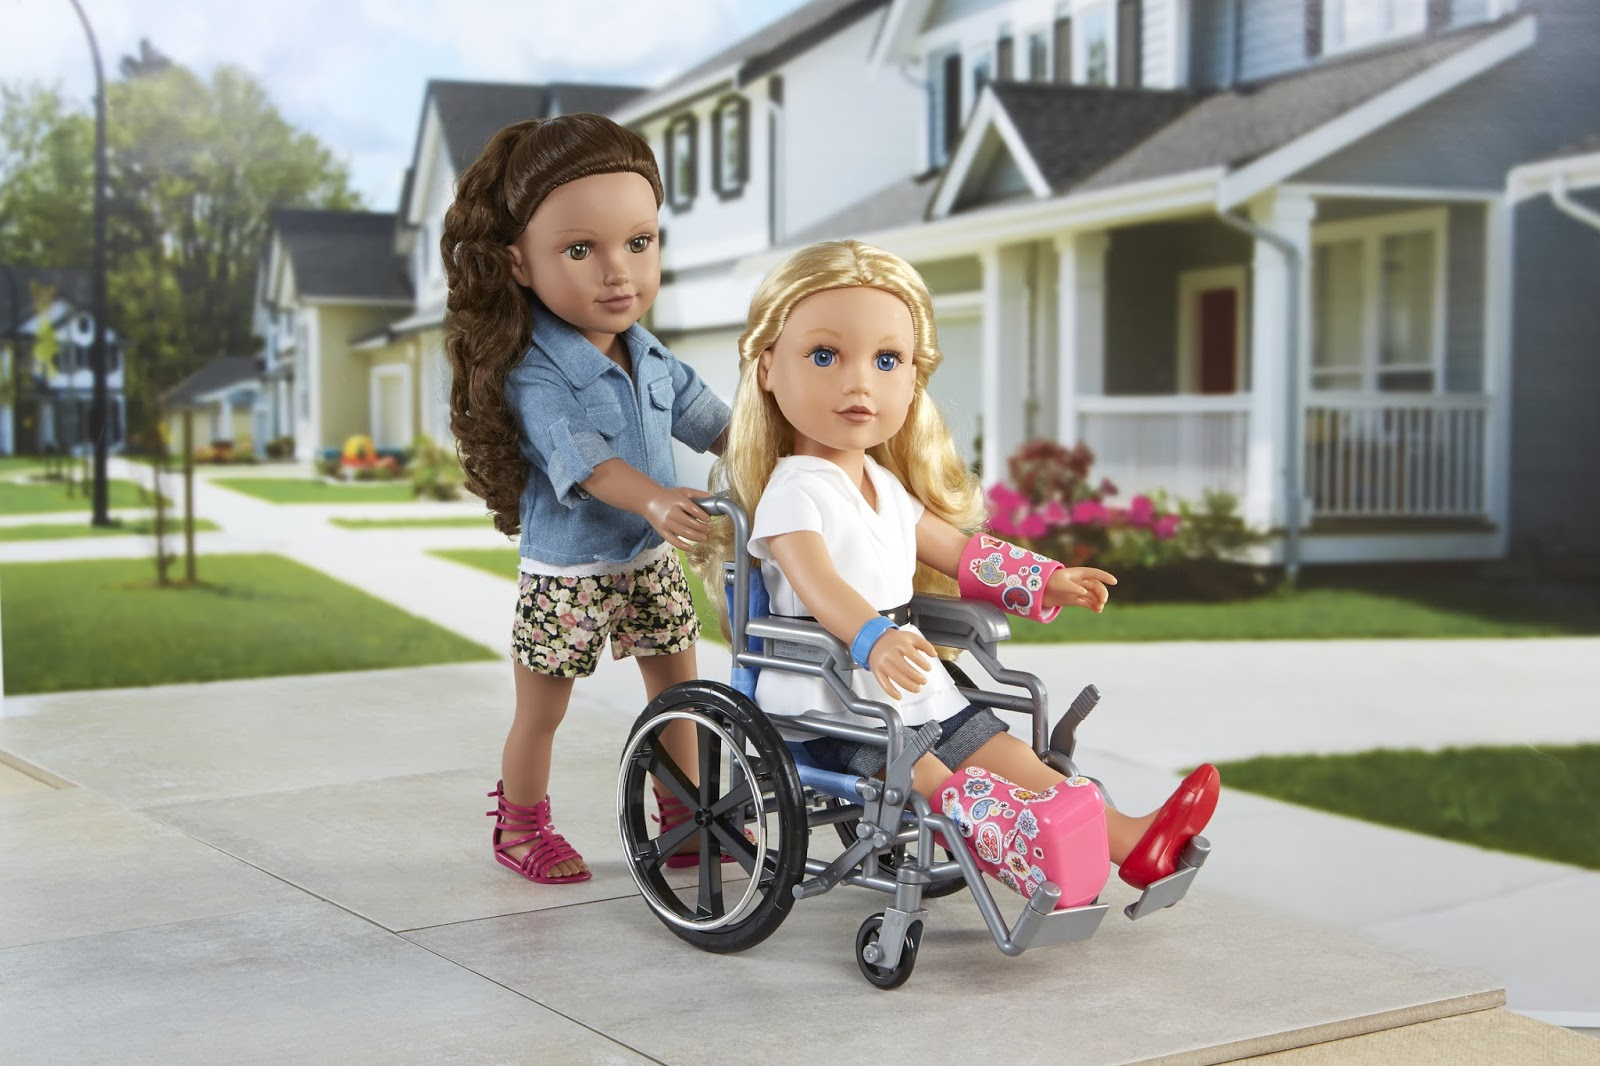 Toys R Us Journey Girls : Welcome to tmg: journey girls from toysr us are celebrating their